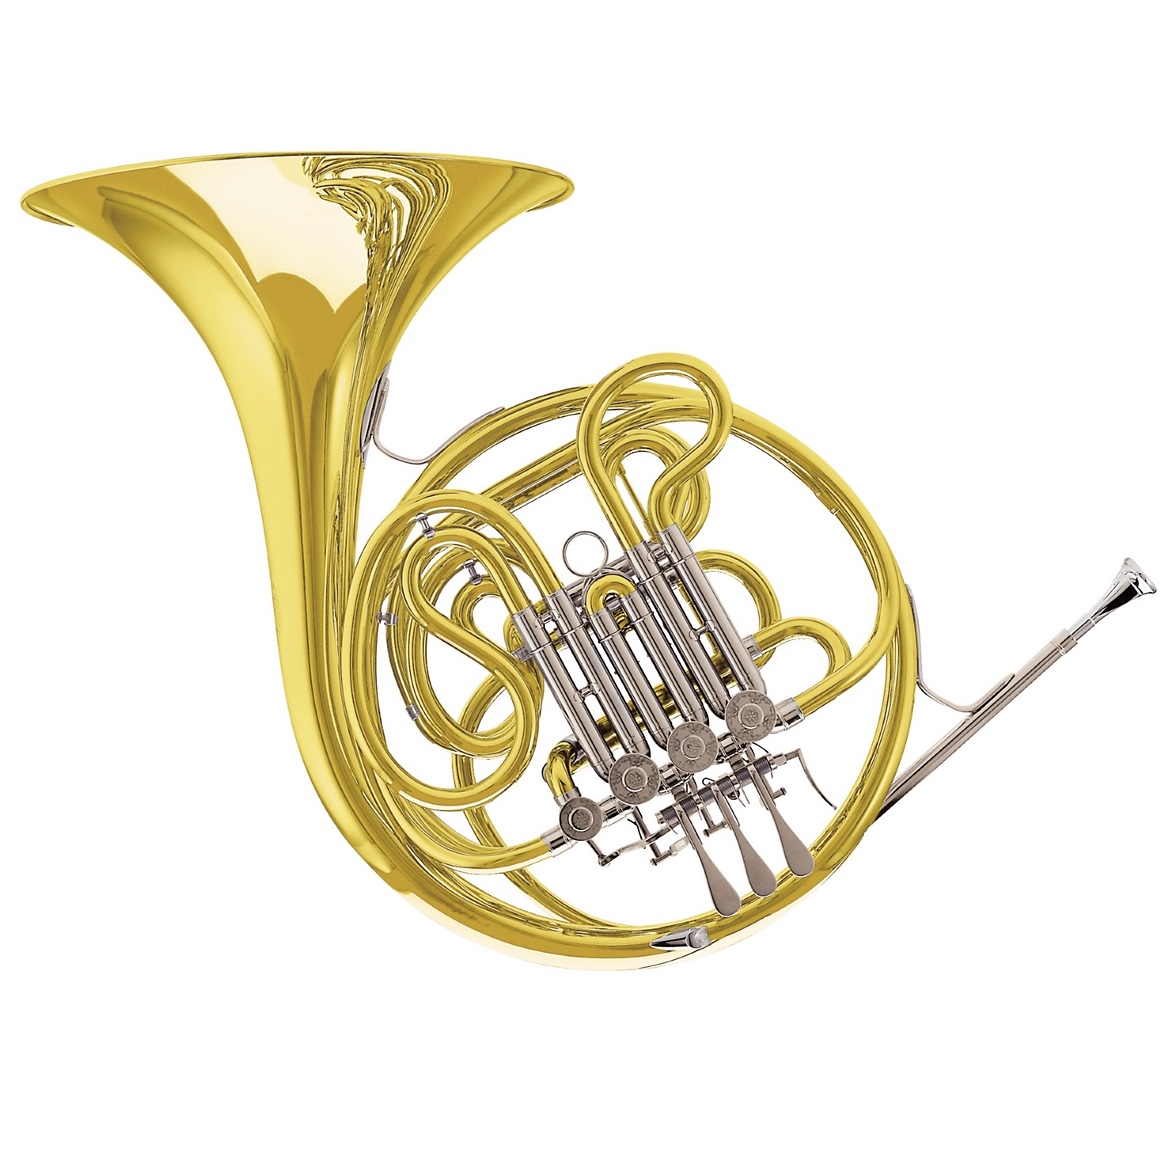 Conn Professional French Horn 10DE - Multiple Options Available